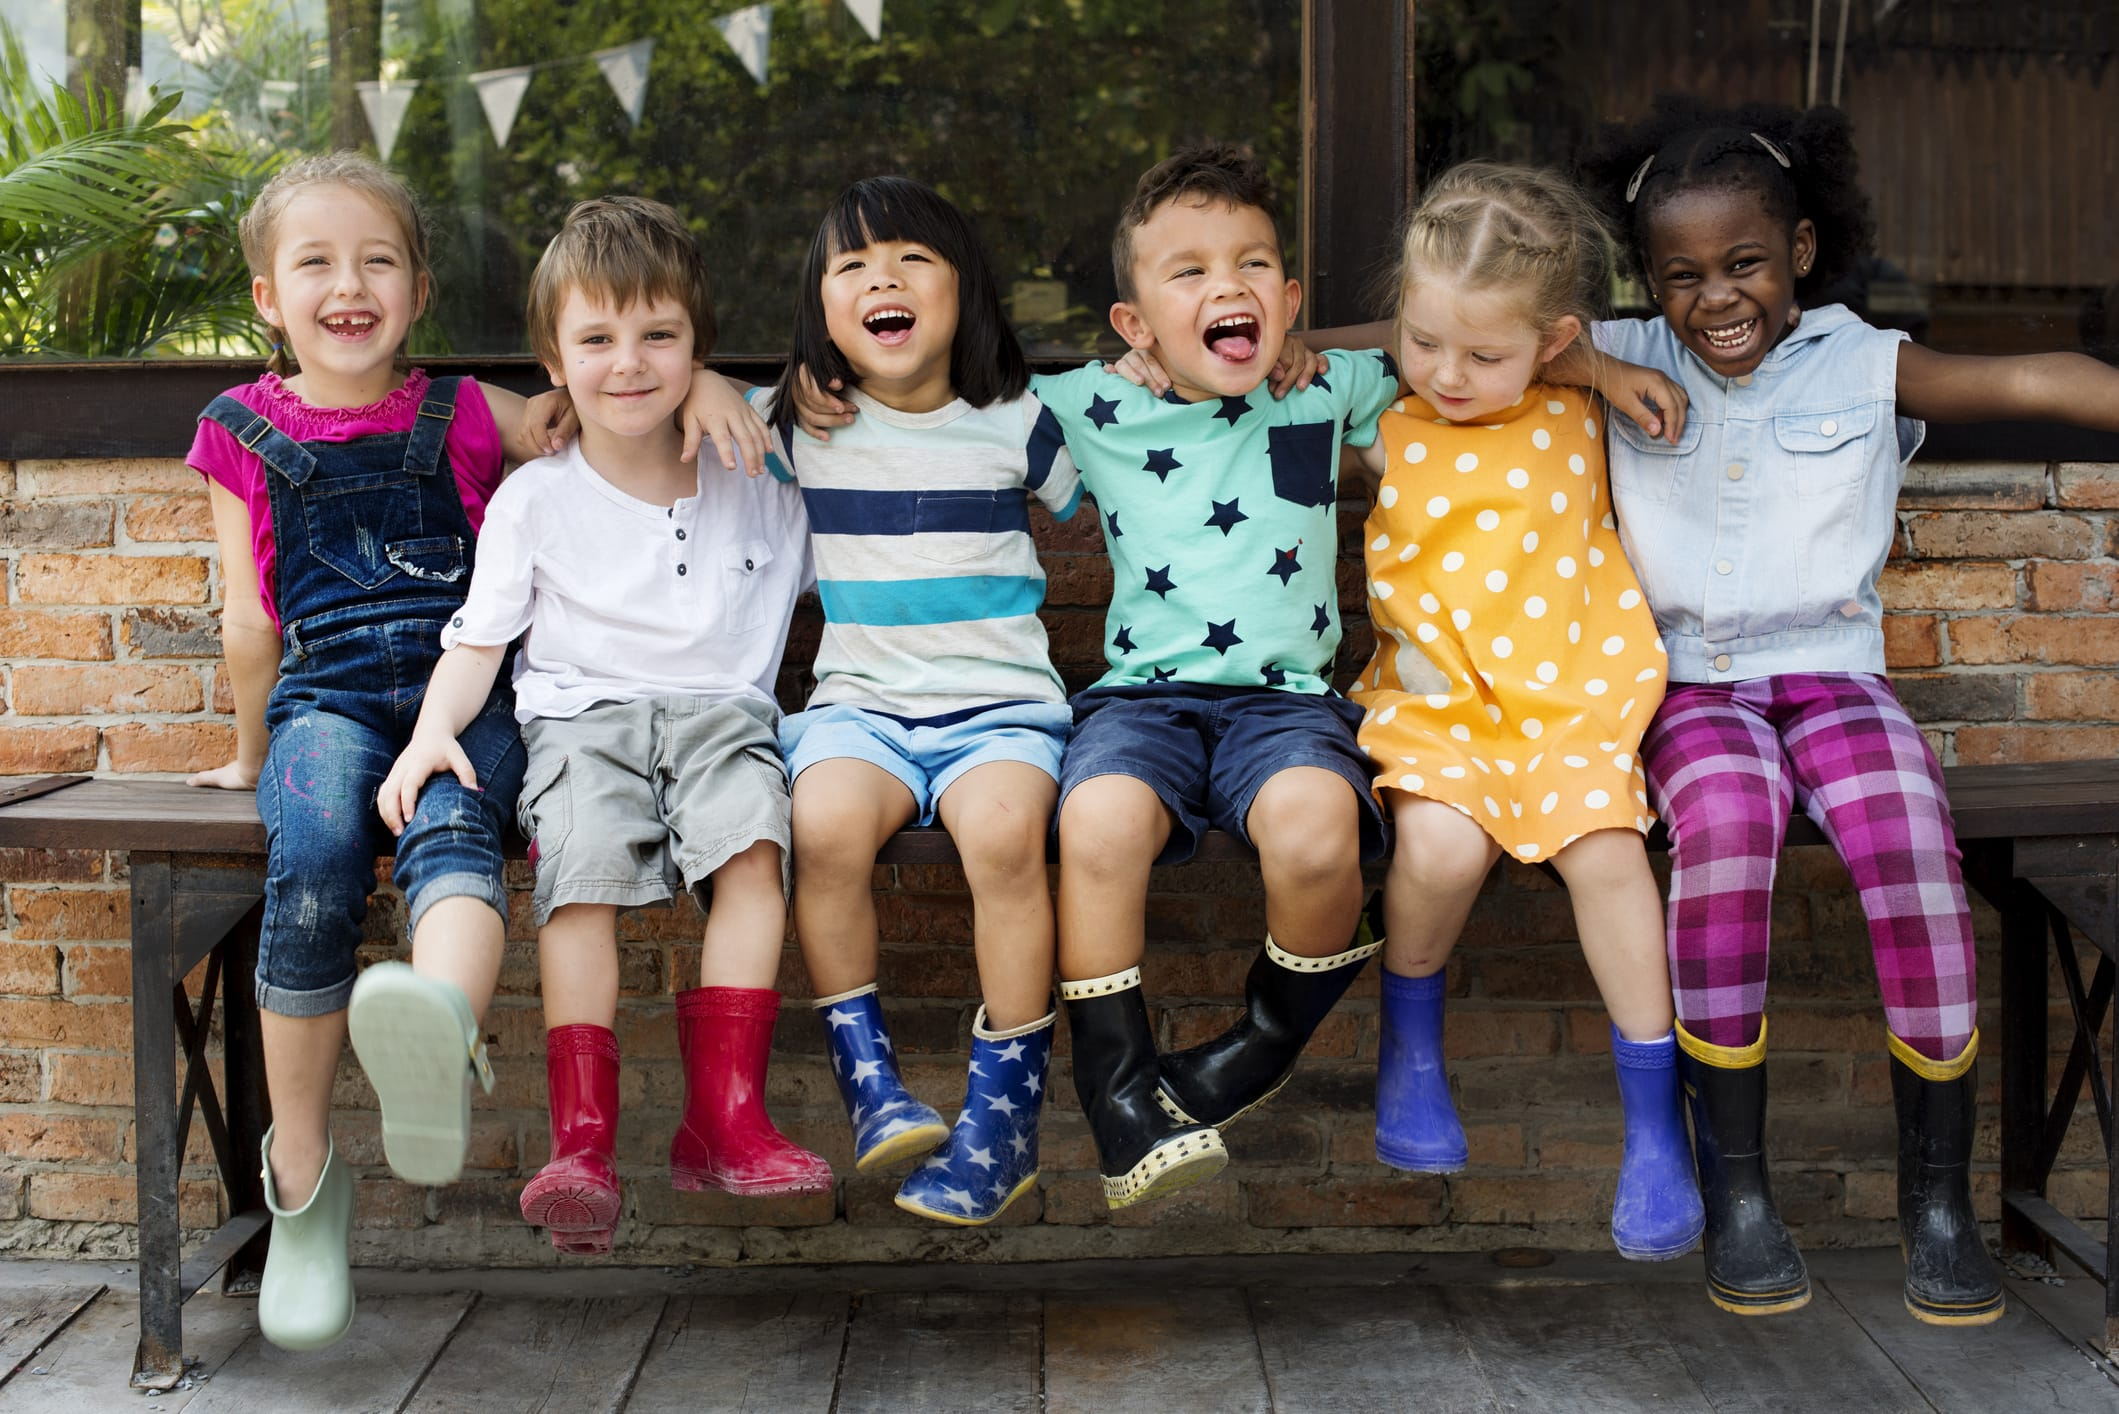 smiling children arm in arm outside on bench